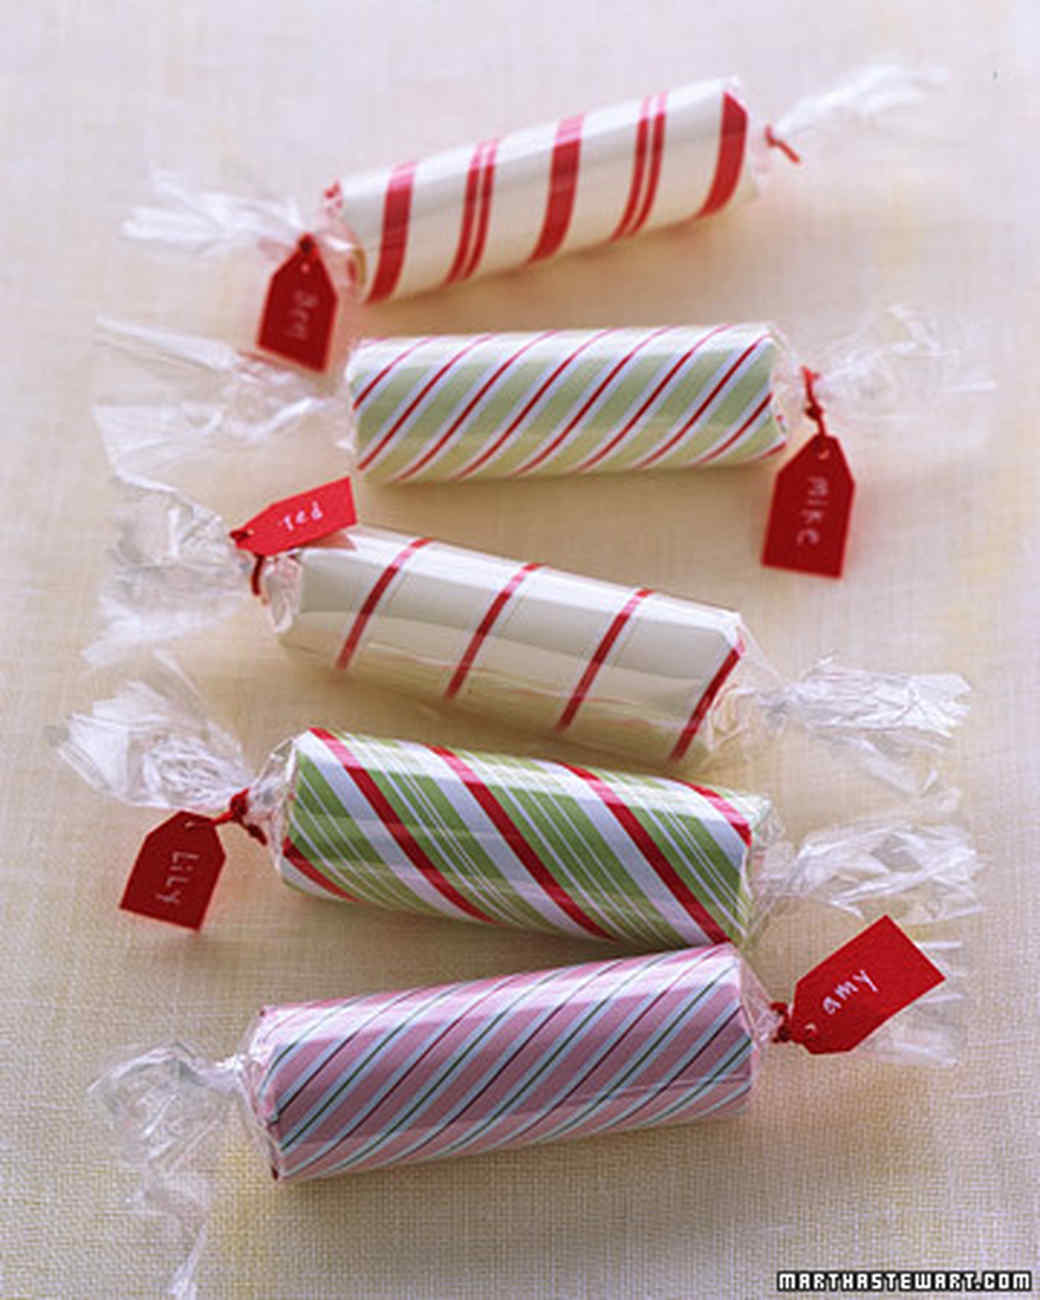 rolls of coins wrapped like candy for stocking stuffers